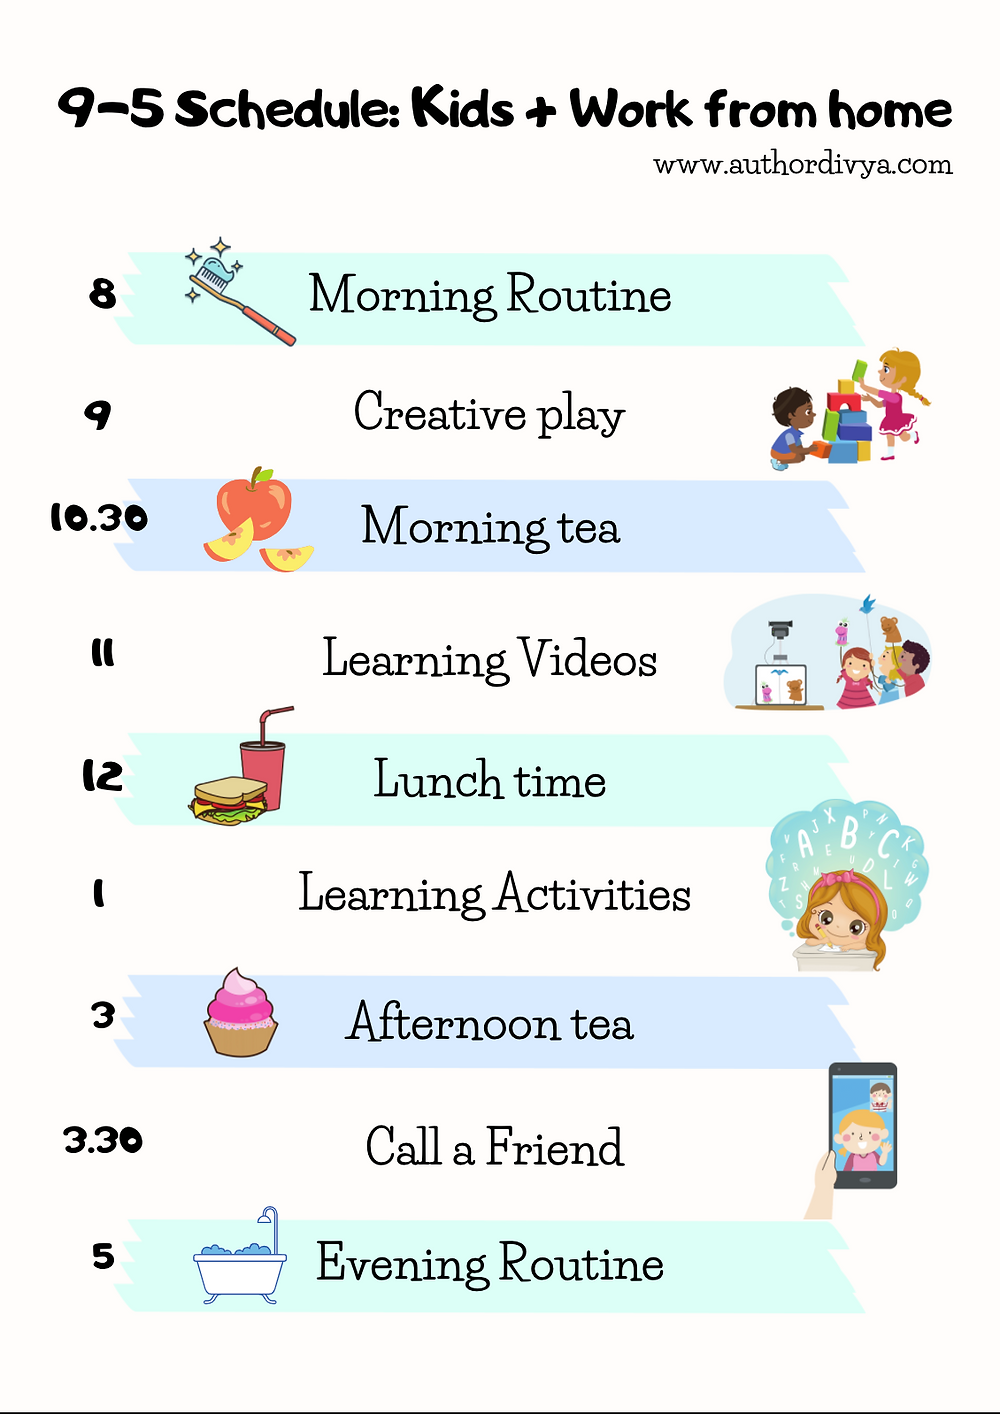 Kid's schedule for parents who work from home